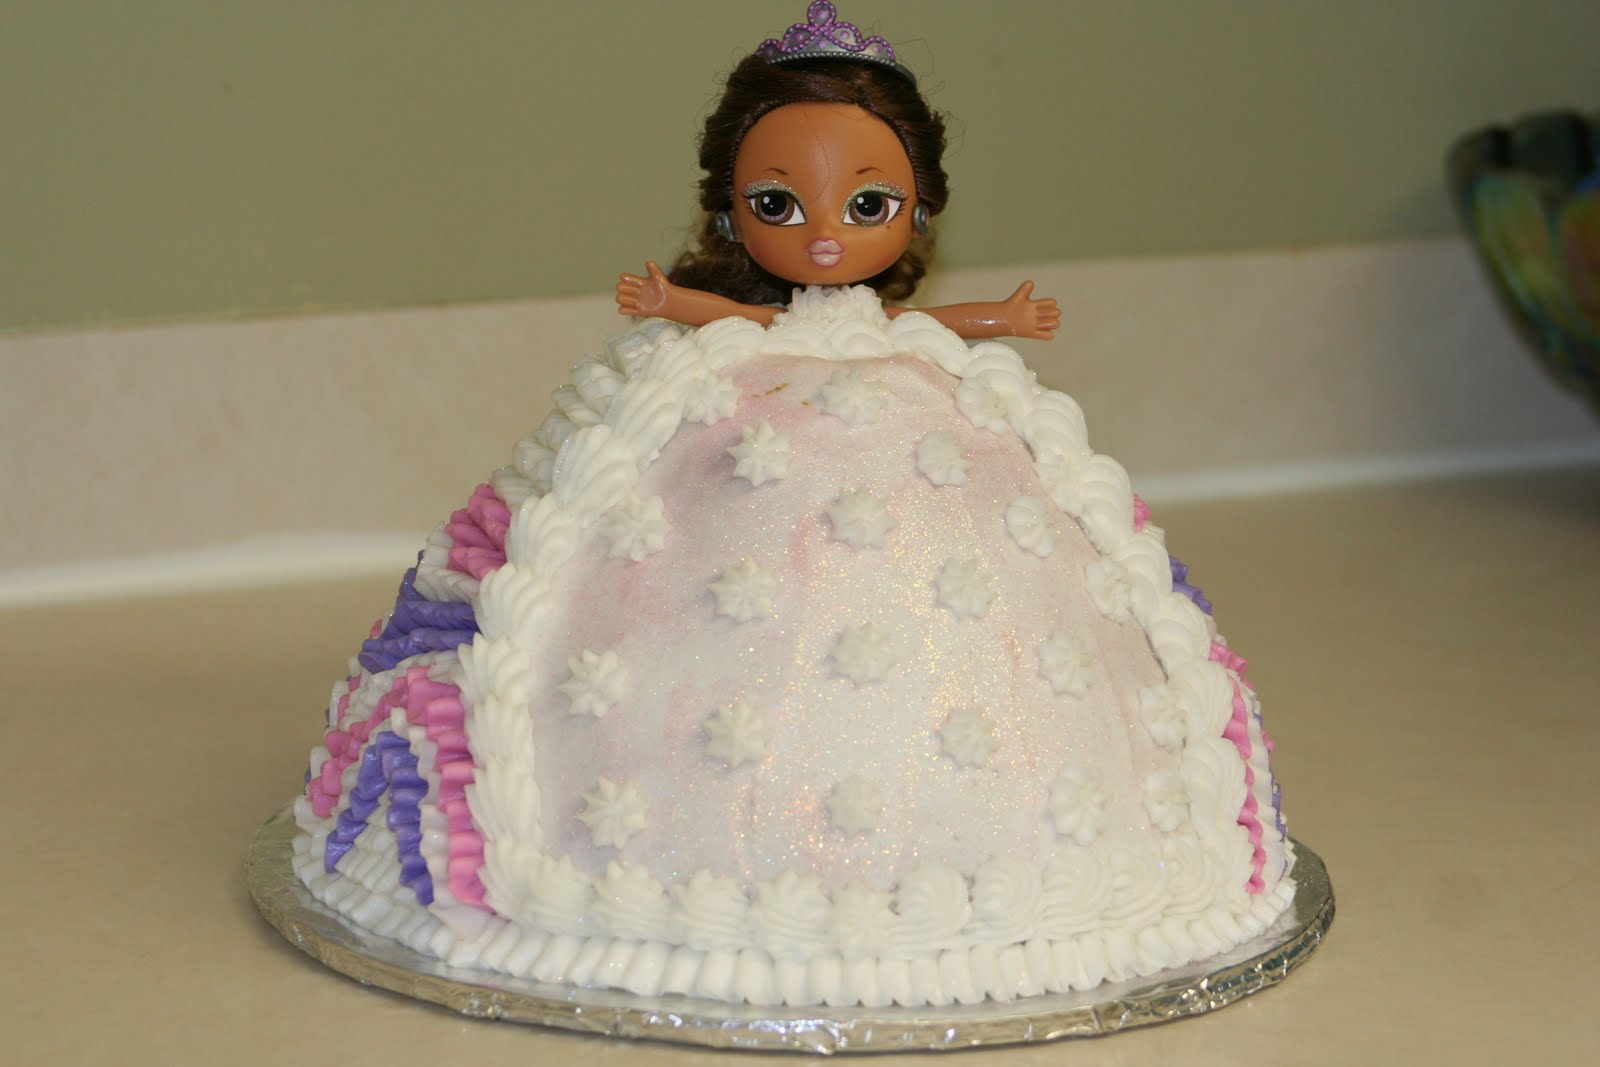 Birthday Cake Pic For Little Girl : BirthdayCakes4Free-Beloit, KS: BIRTHDAY CAKE FOR EIGHT ...